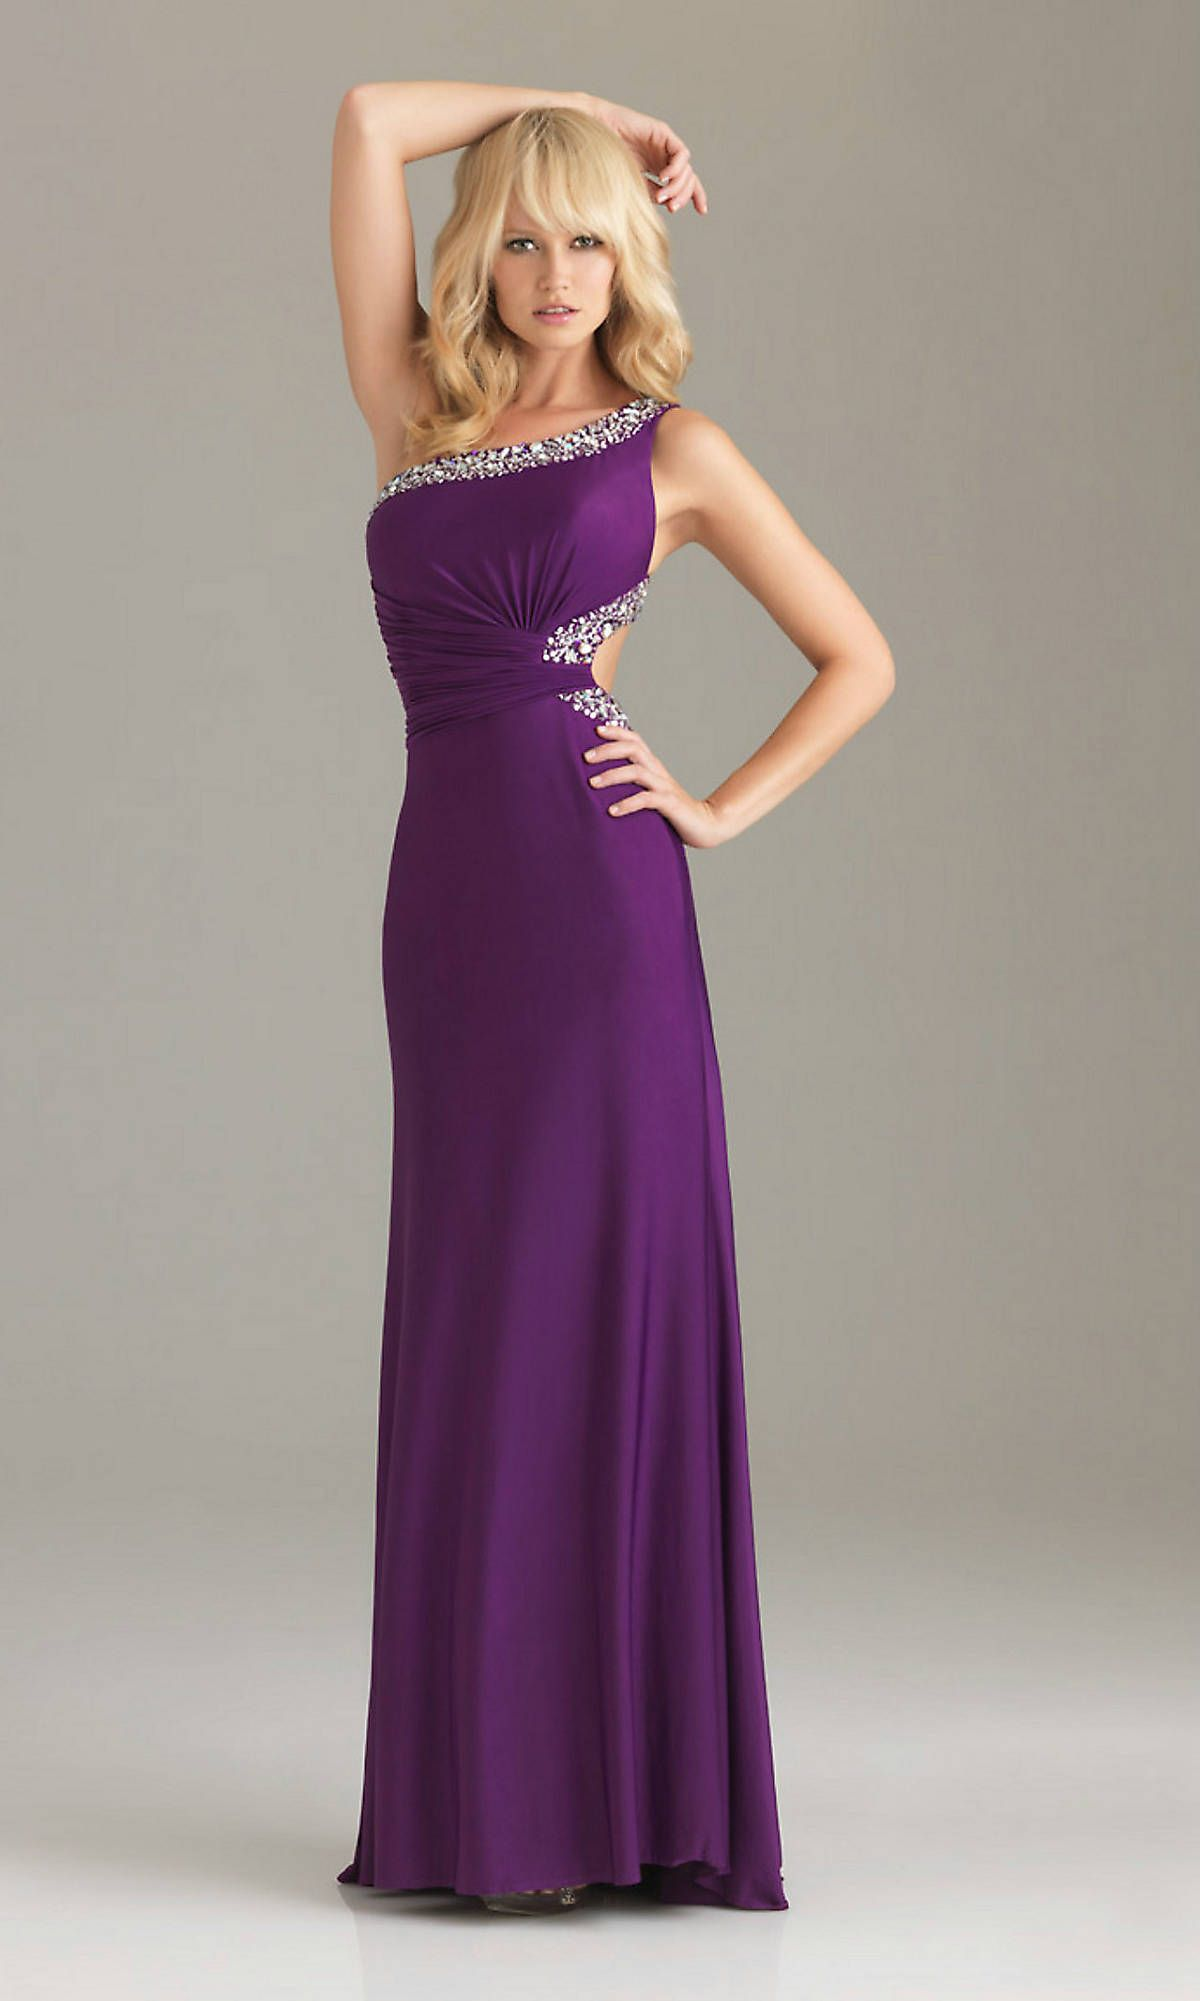 Short Purple Prom Dresses 2013